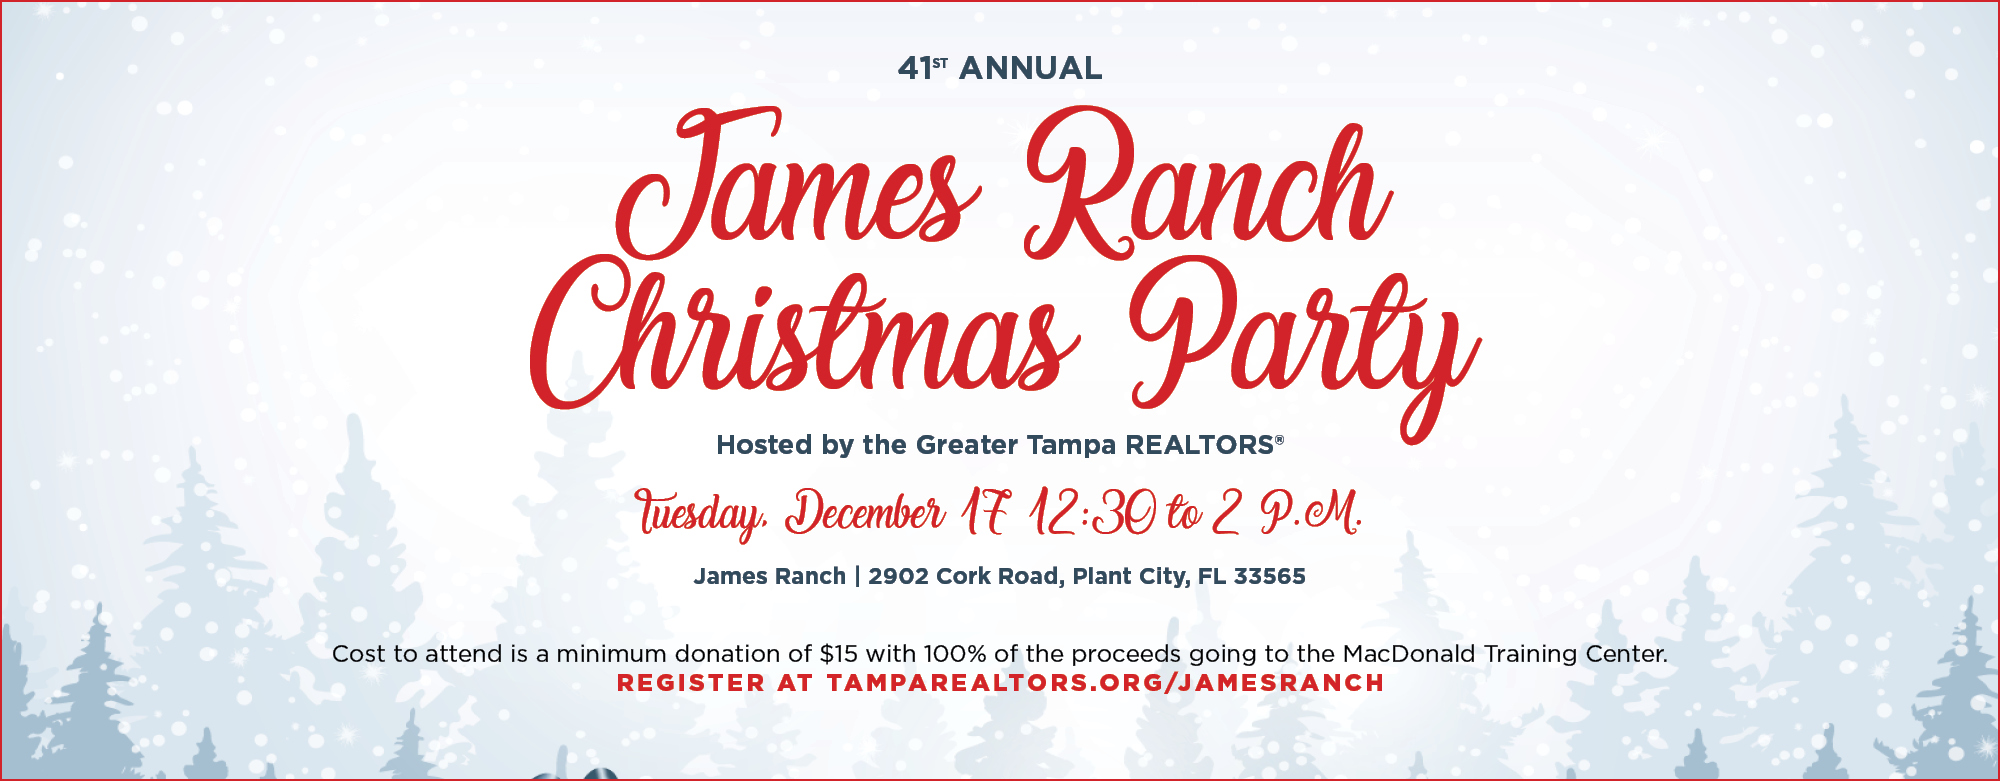 41st Annual James Ranch Christmas Party, sign up today.